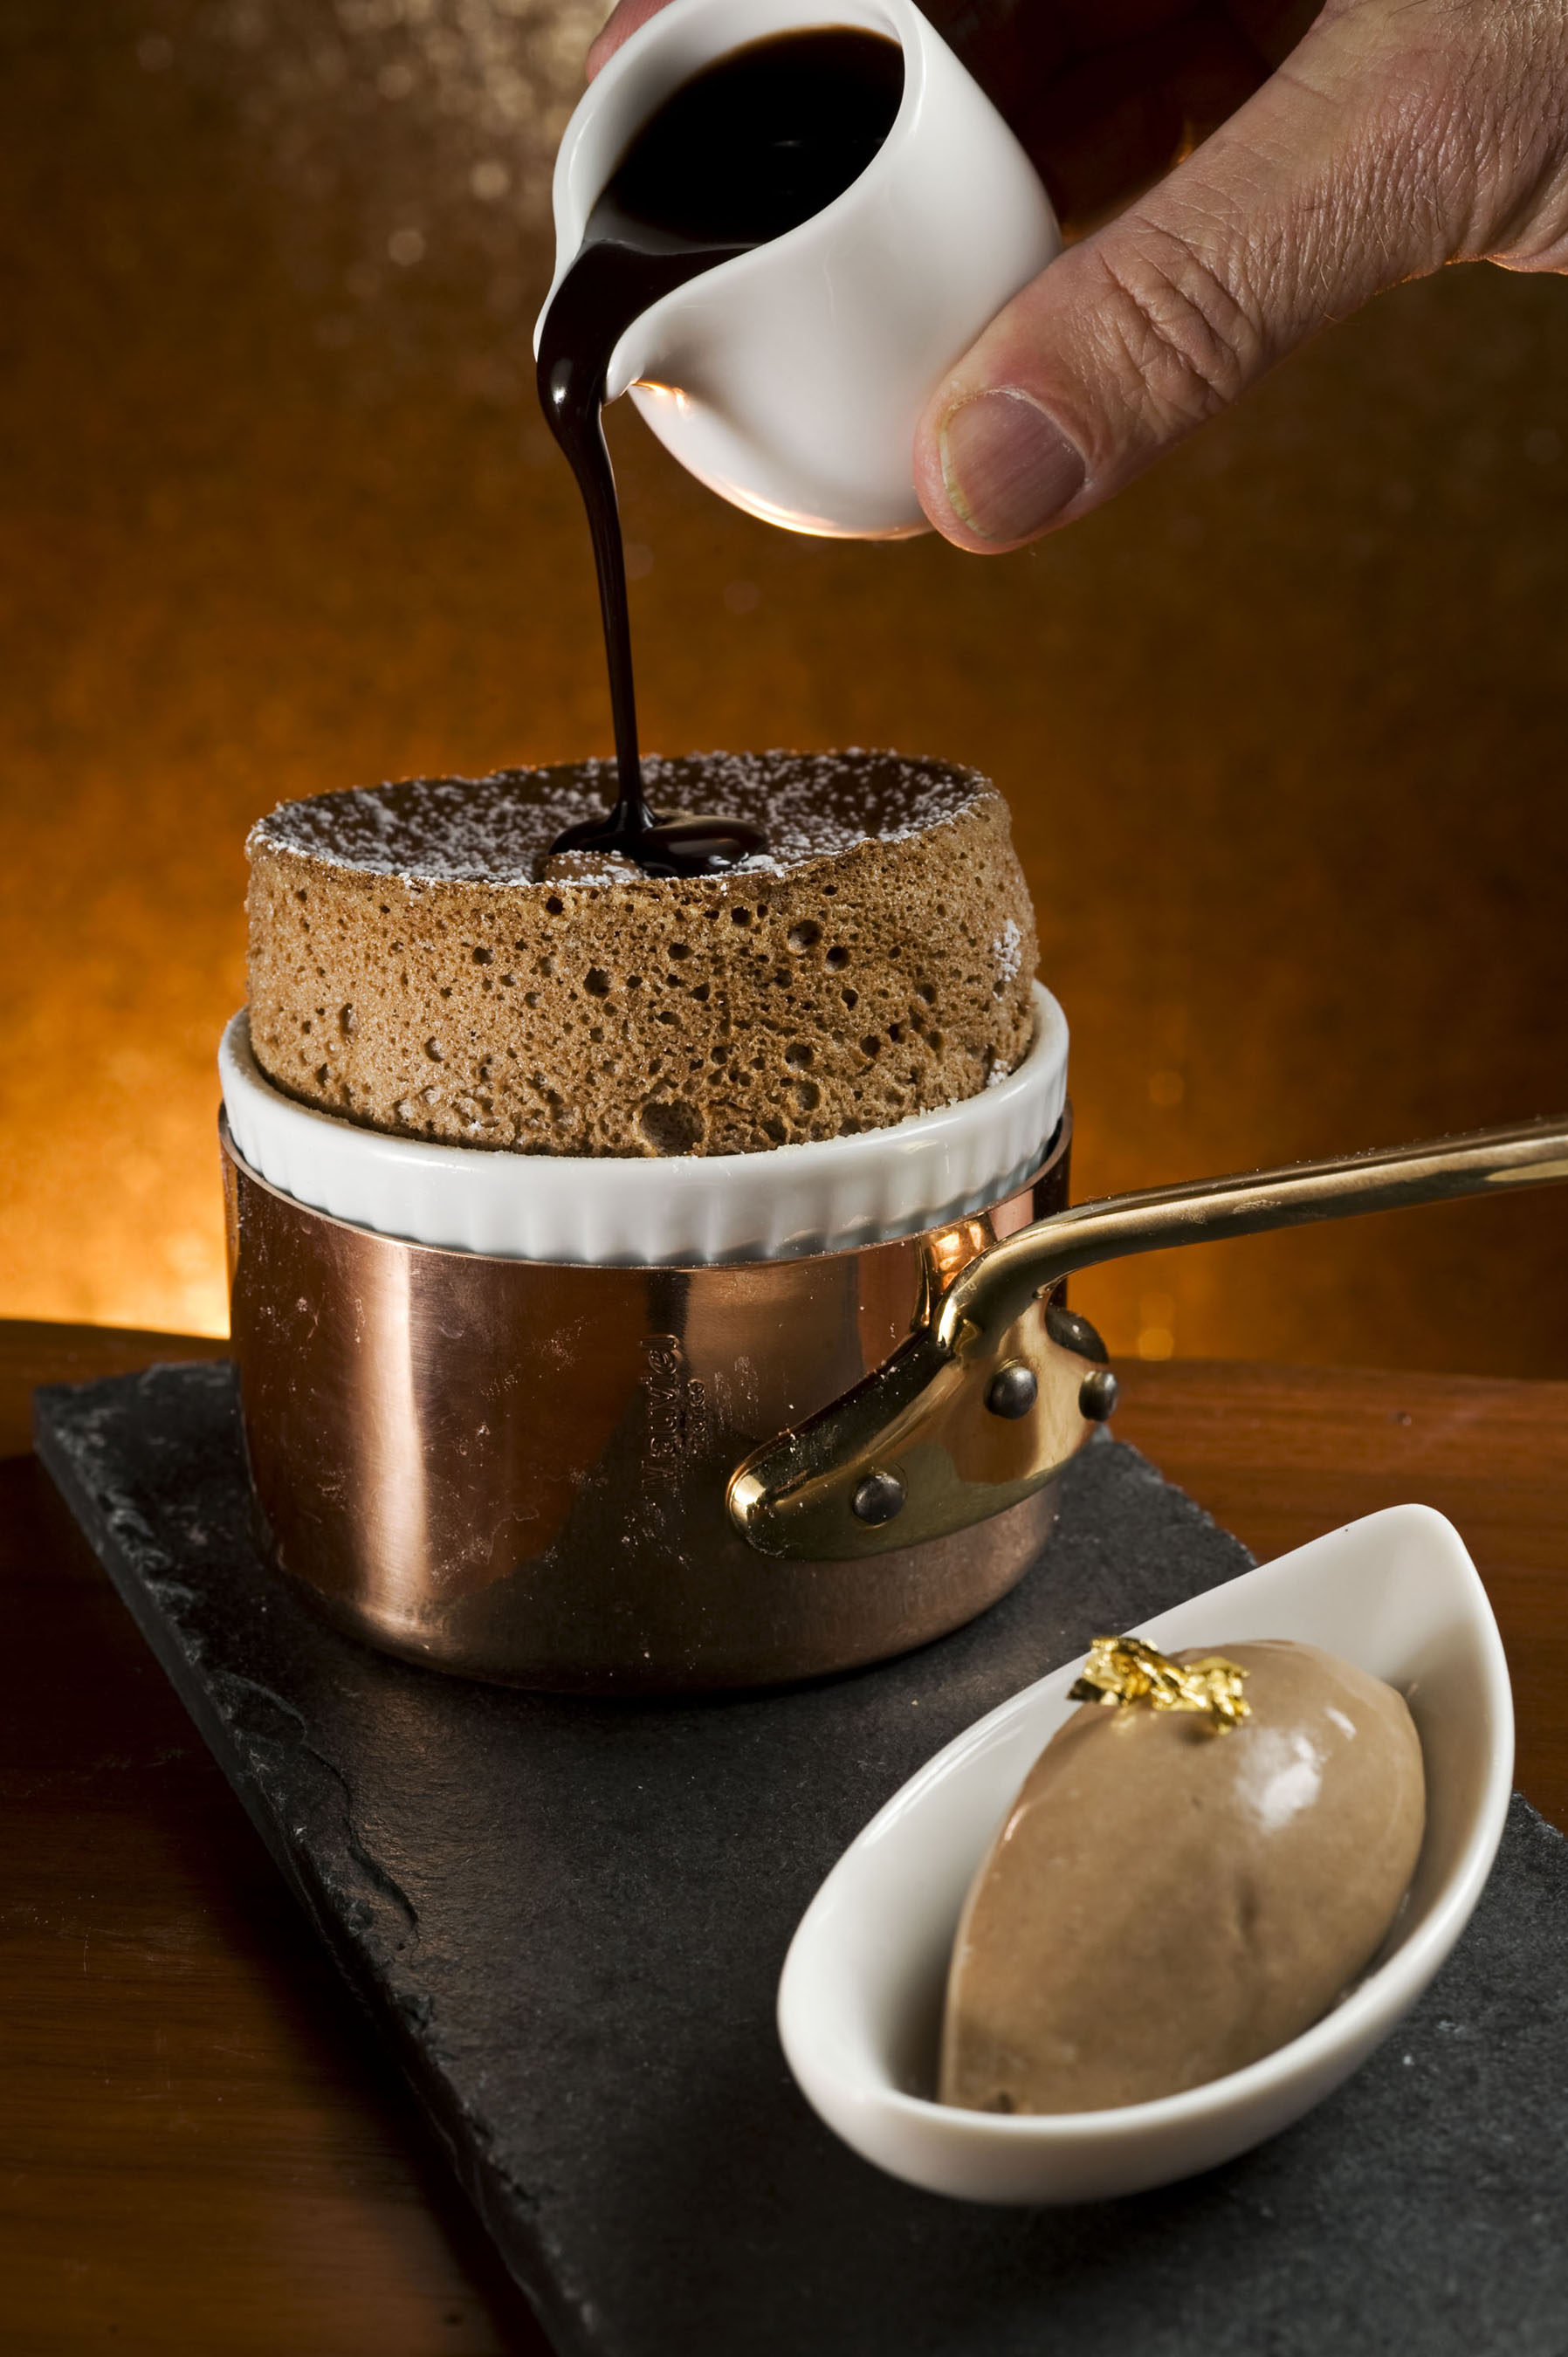 Chocolate Souffle with Chocolate Ganache and Housemade Ice Cream